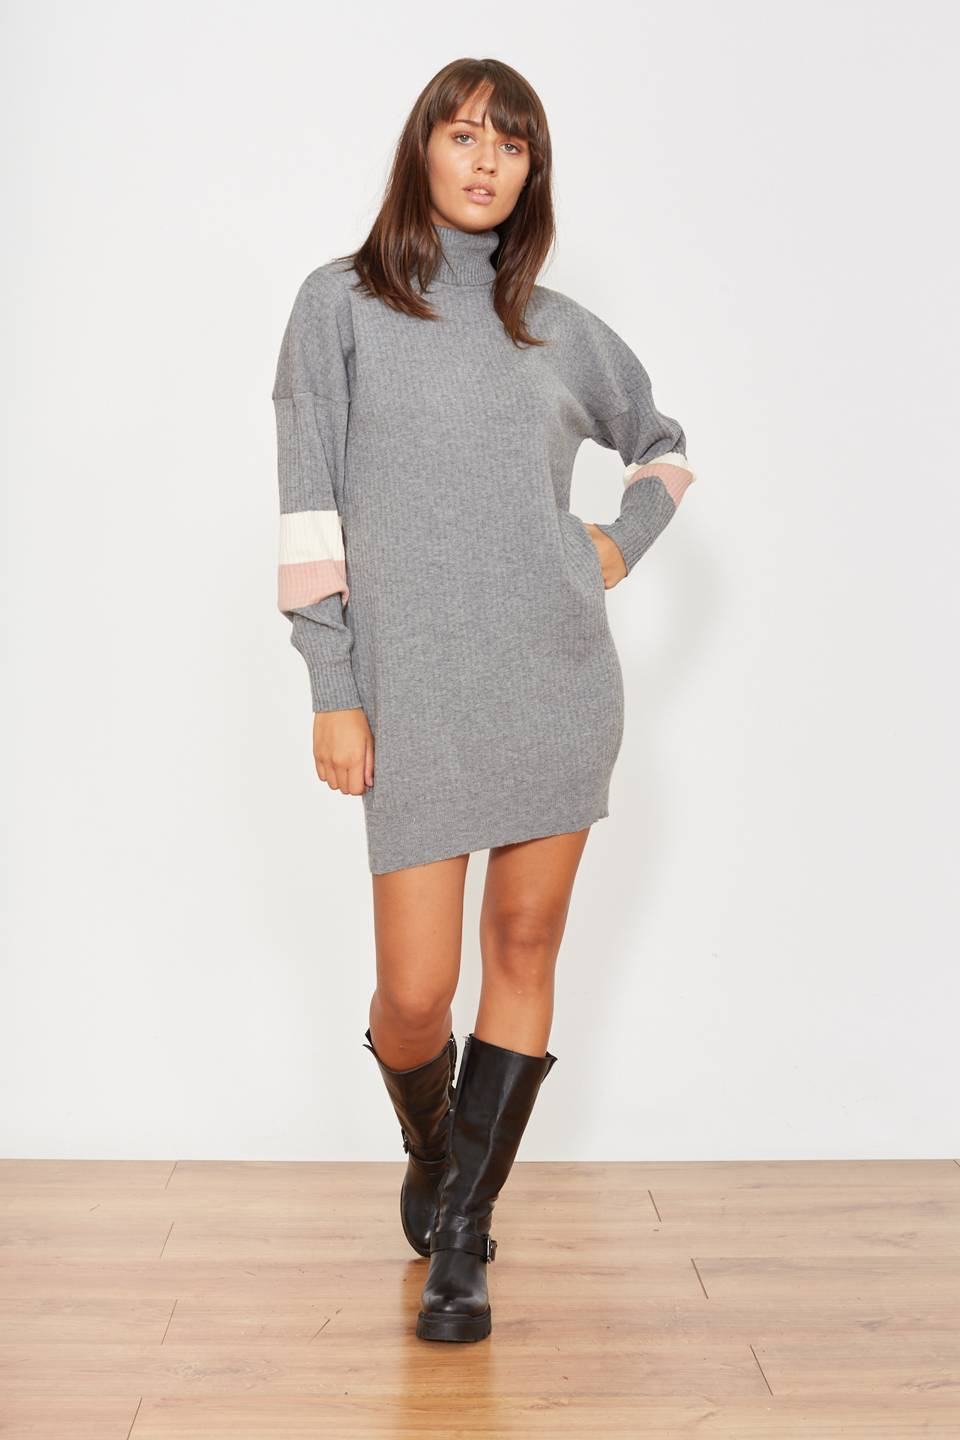 Mini-dress ciclista grigio rosa/panna - Autunno 2019 - Inverno 2020 | Brend